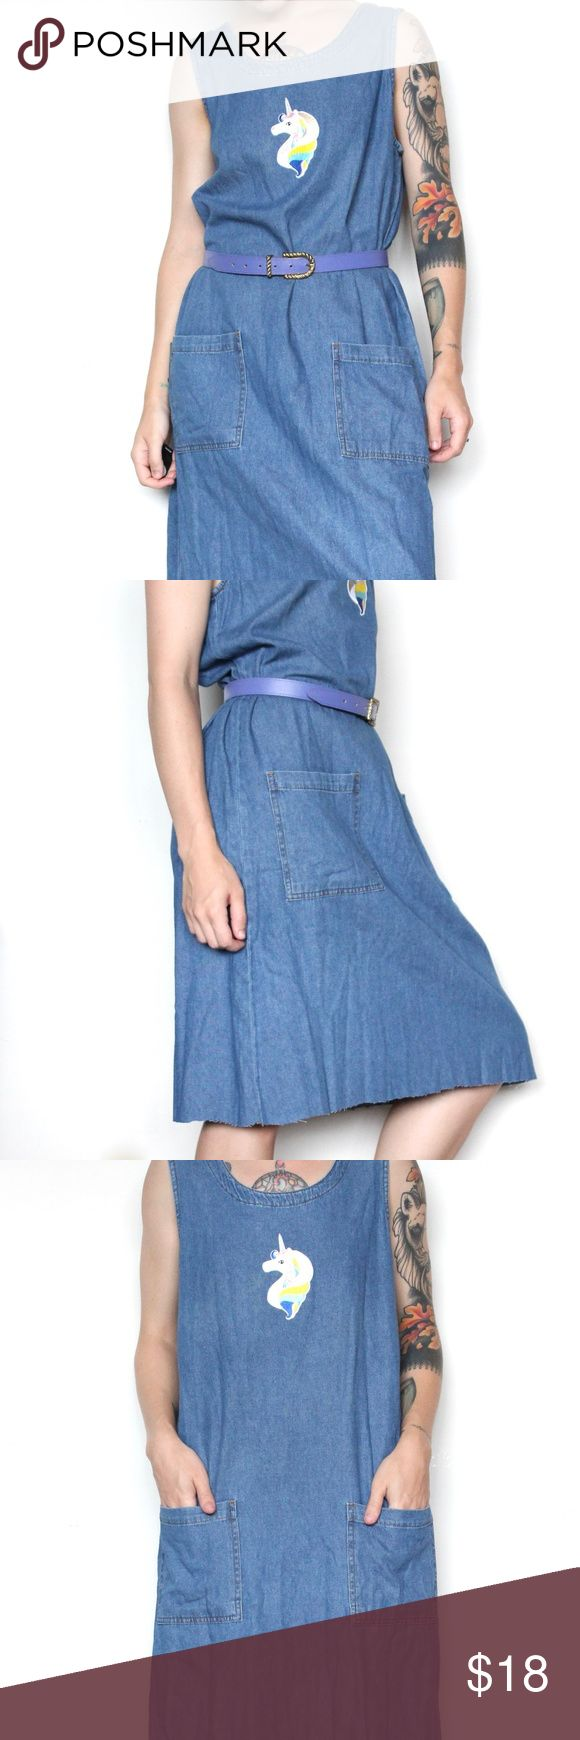 """Unicorn Sleeveless Denim Dress with Pockets Adorable vintage denim dress from the 90s, updated with a modern unicorn patch on the front. The bottom has been hand-cut as well so there's a raw hemline at the bottom. Two pockets in the front, no fasteners so you have to put it on overhead. Styles best with a belt (belt not included)  Measurements lying flat Armpit to armpit: 20"""" (40""""around) Waist: 21.5"""" (43""""around) Hips: roughly 23"""" (46""""around) Total length: 41"""" Brand: Marisa Canvas Tag size: L…"""